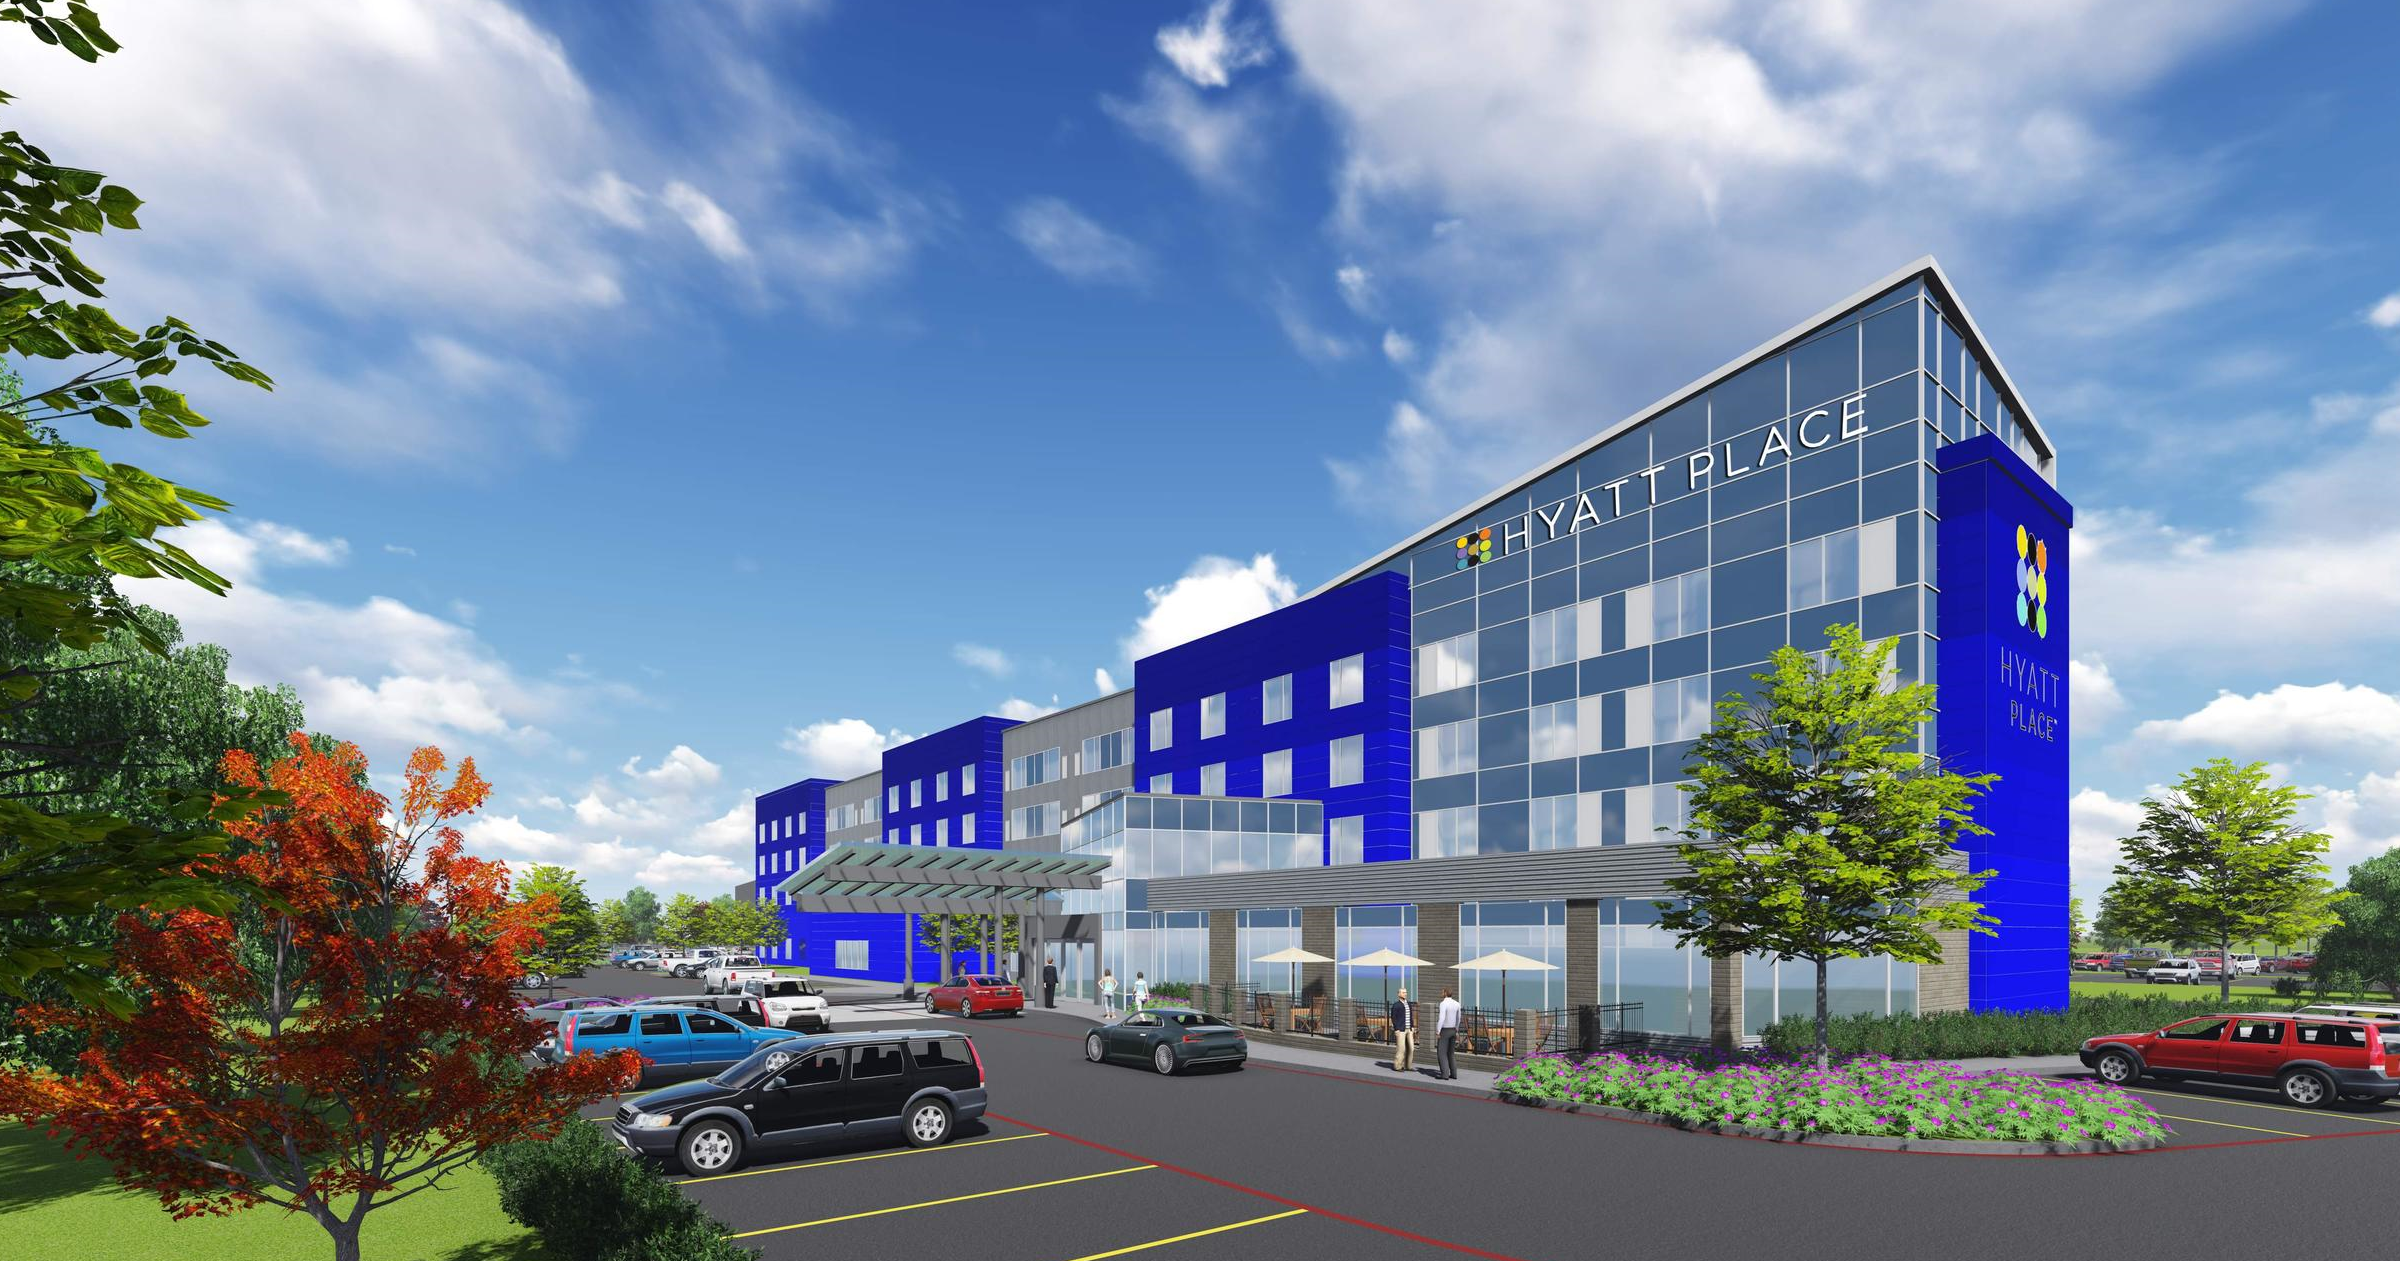 The Town Board voted to approve a 90-day extension for considering a proposed Hyatt Place hotel in Melville.